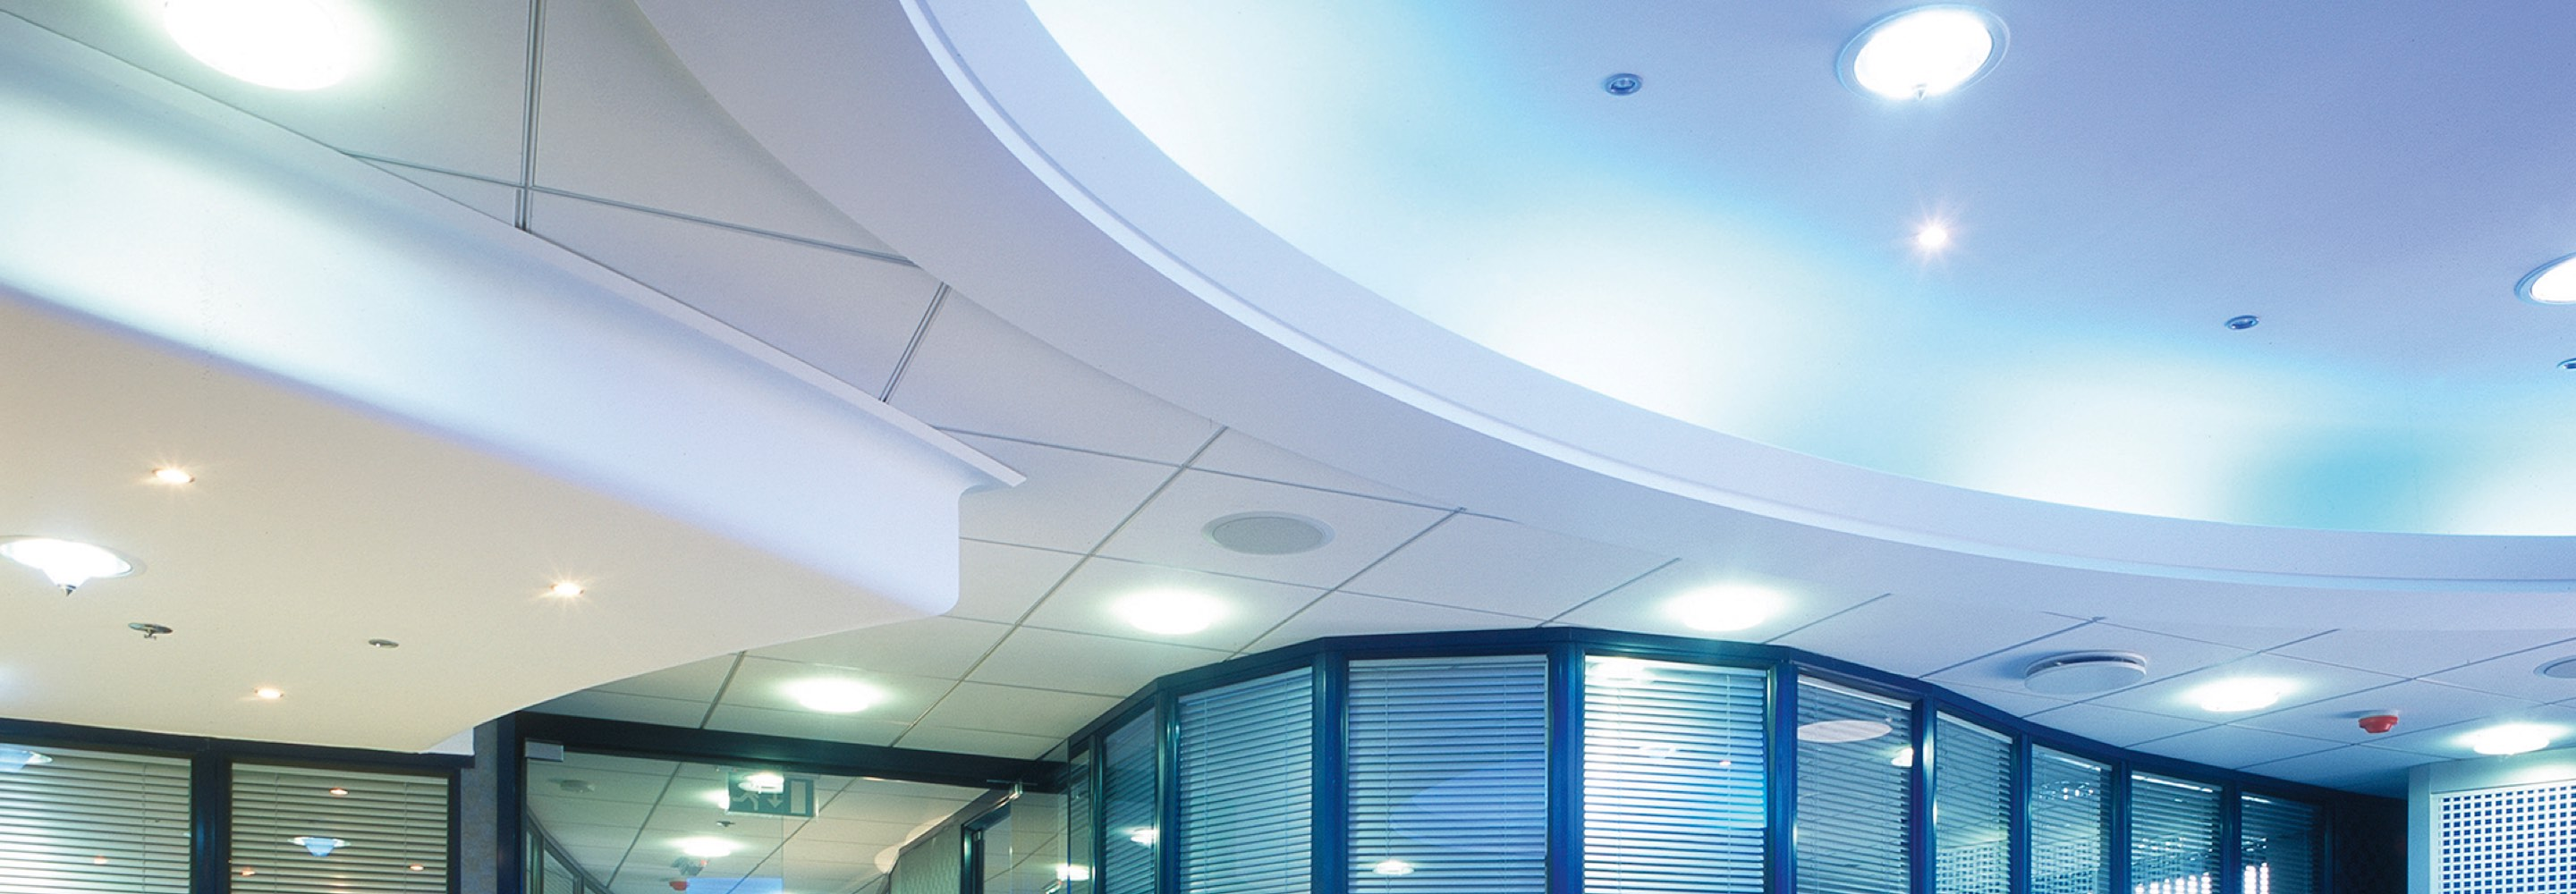 Corporate Interiors commercial ceilings design and installation